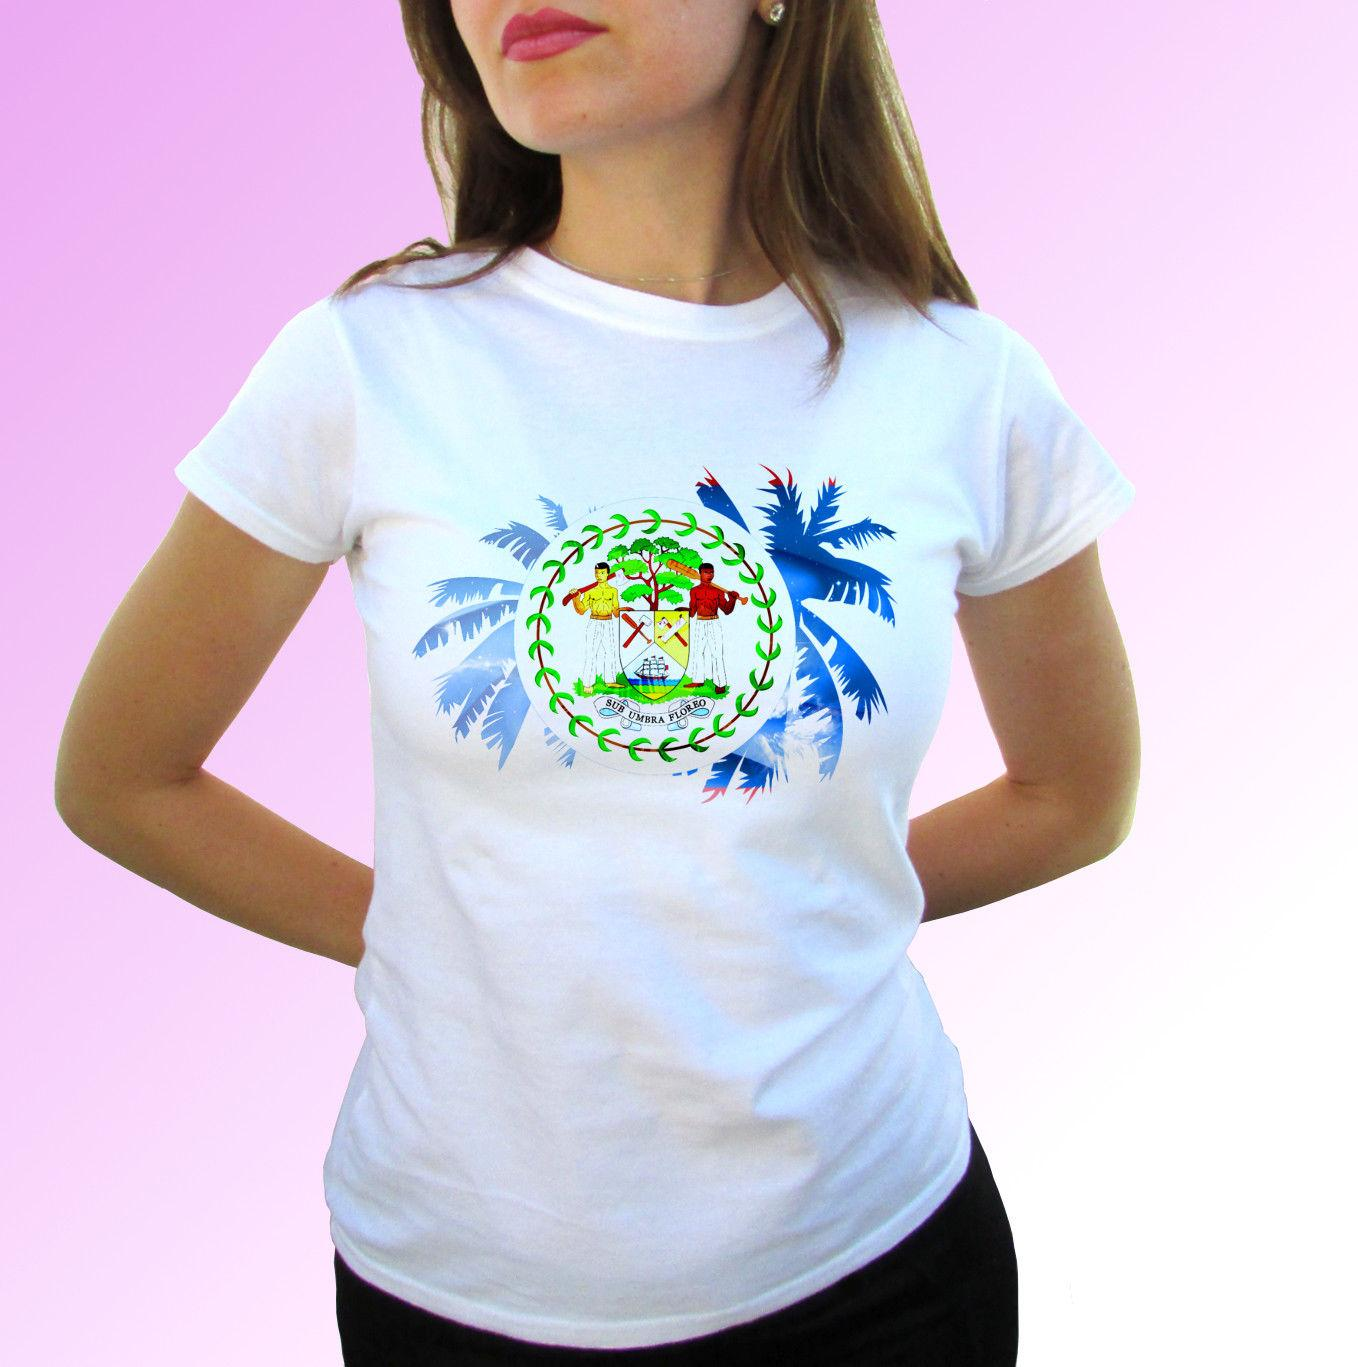 white t shirt top design mens womens kids /& baby sizes Benin flag